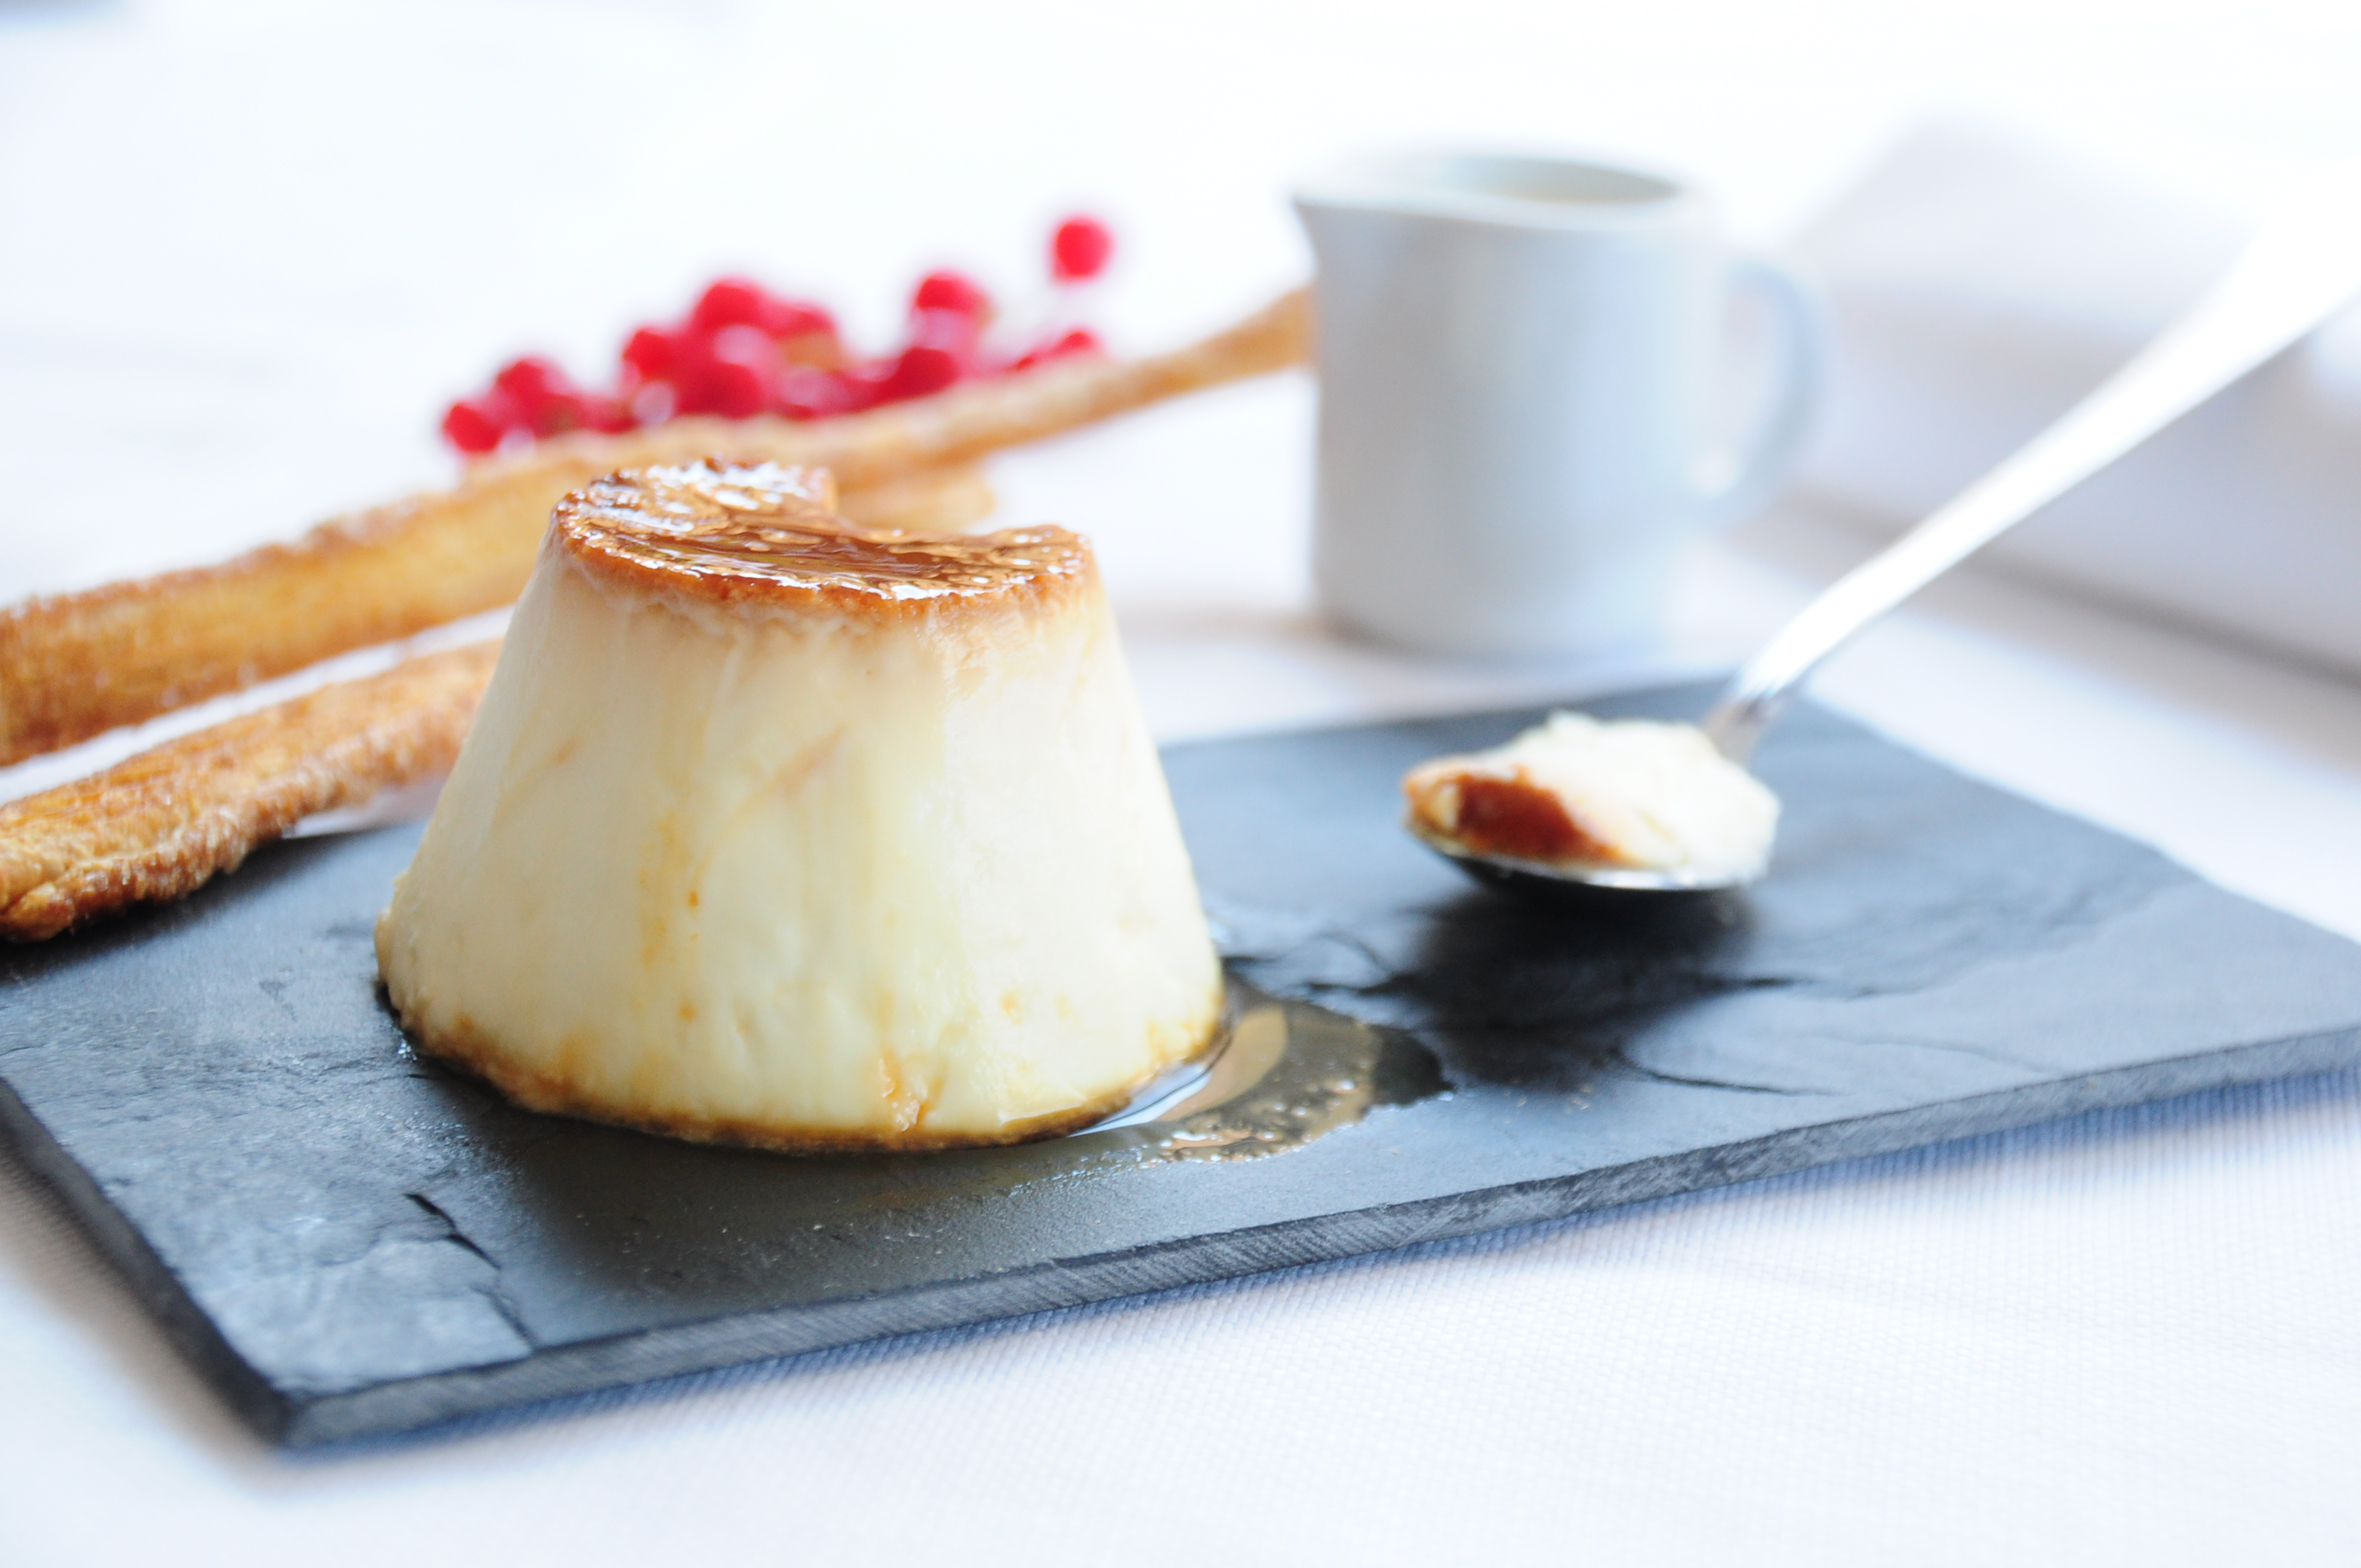 how to make panna cotta at home